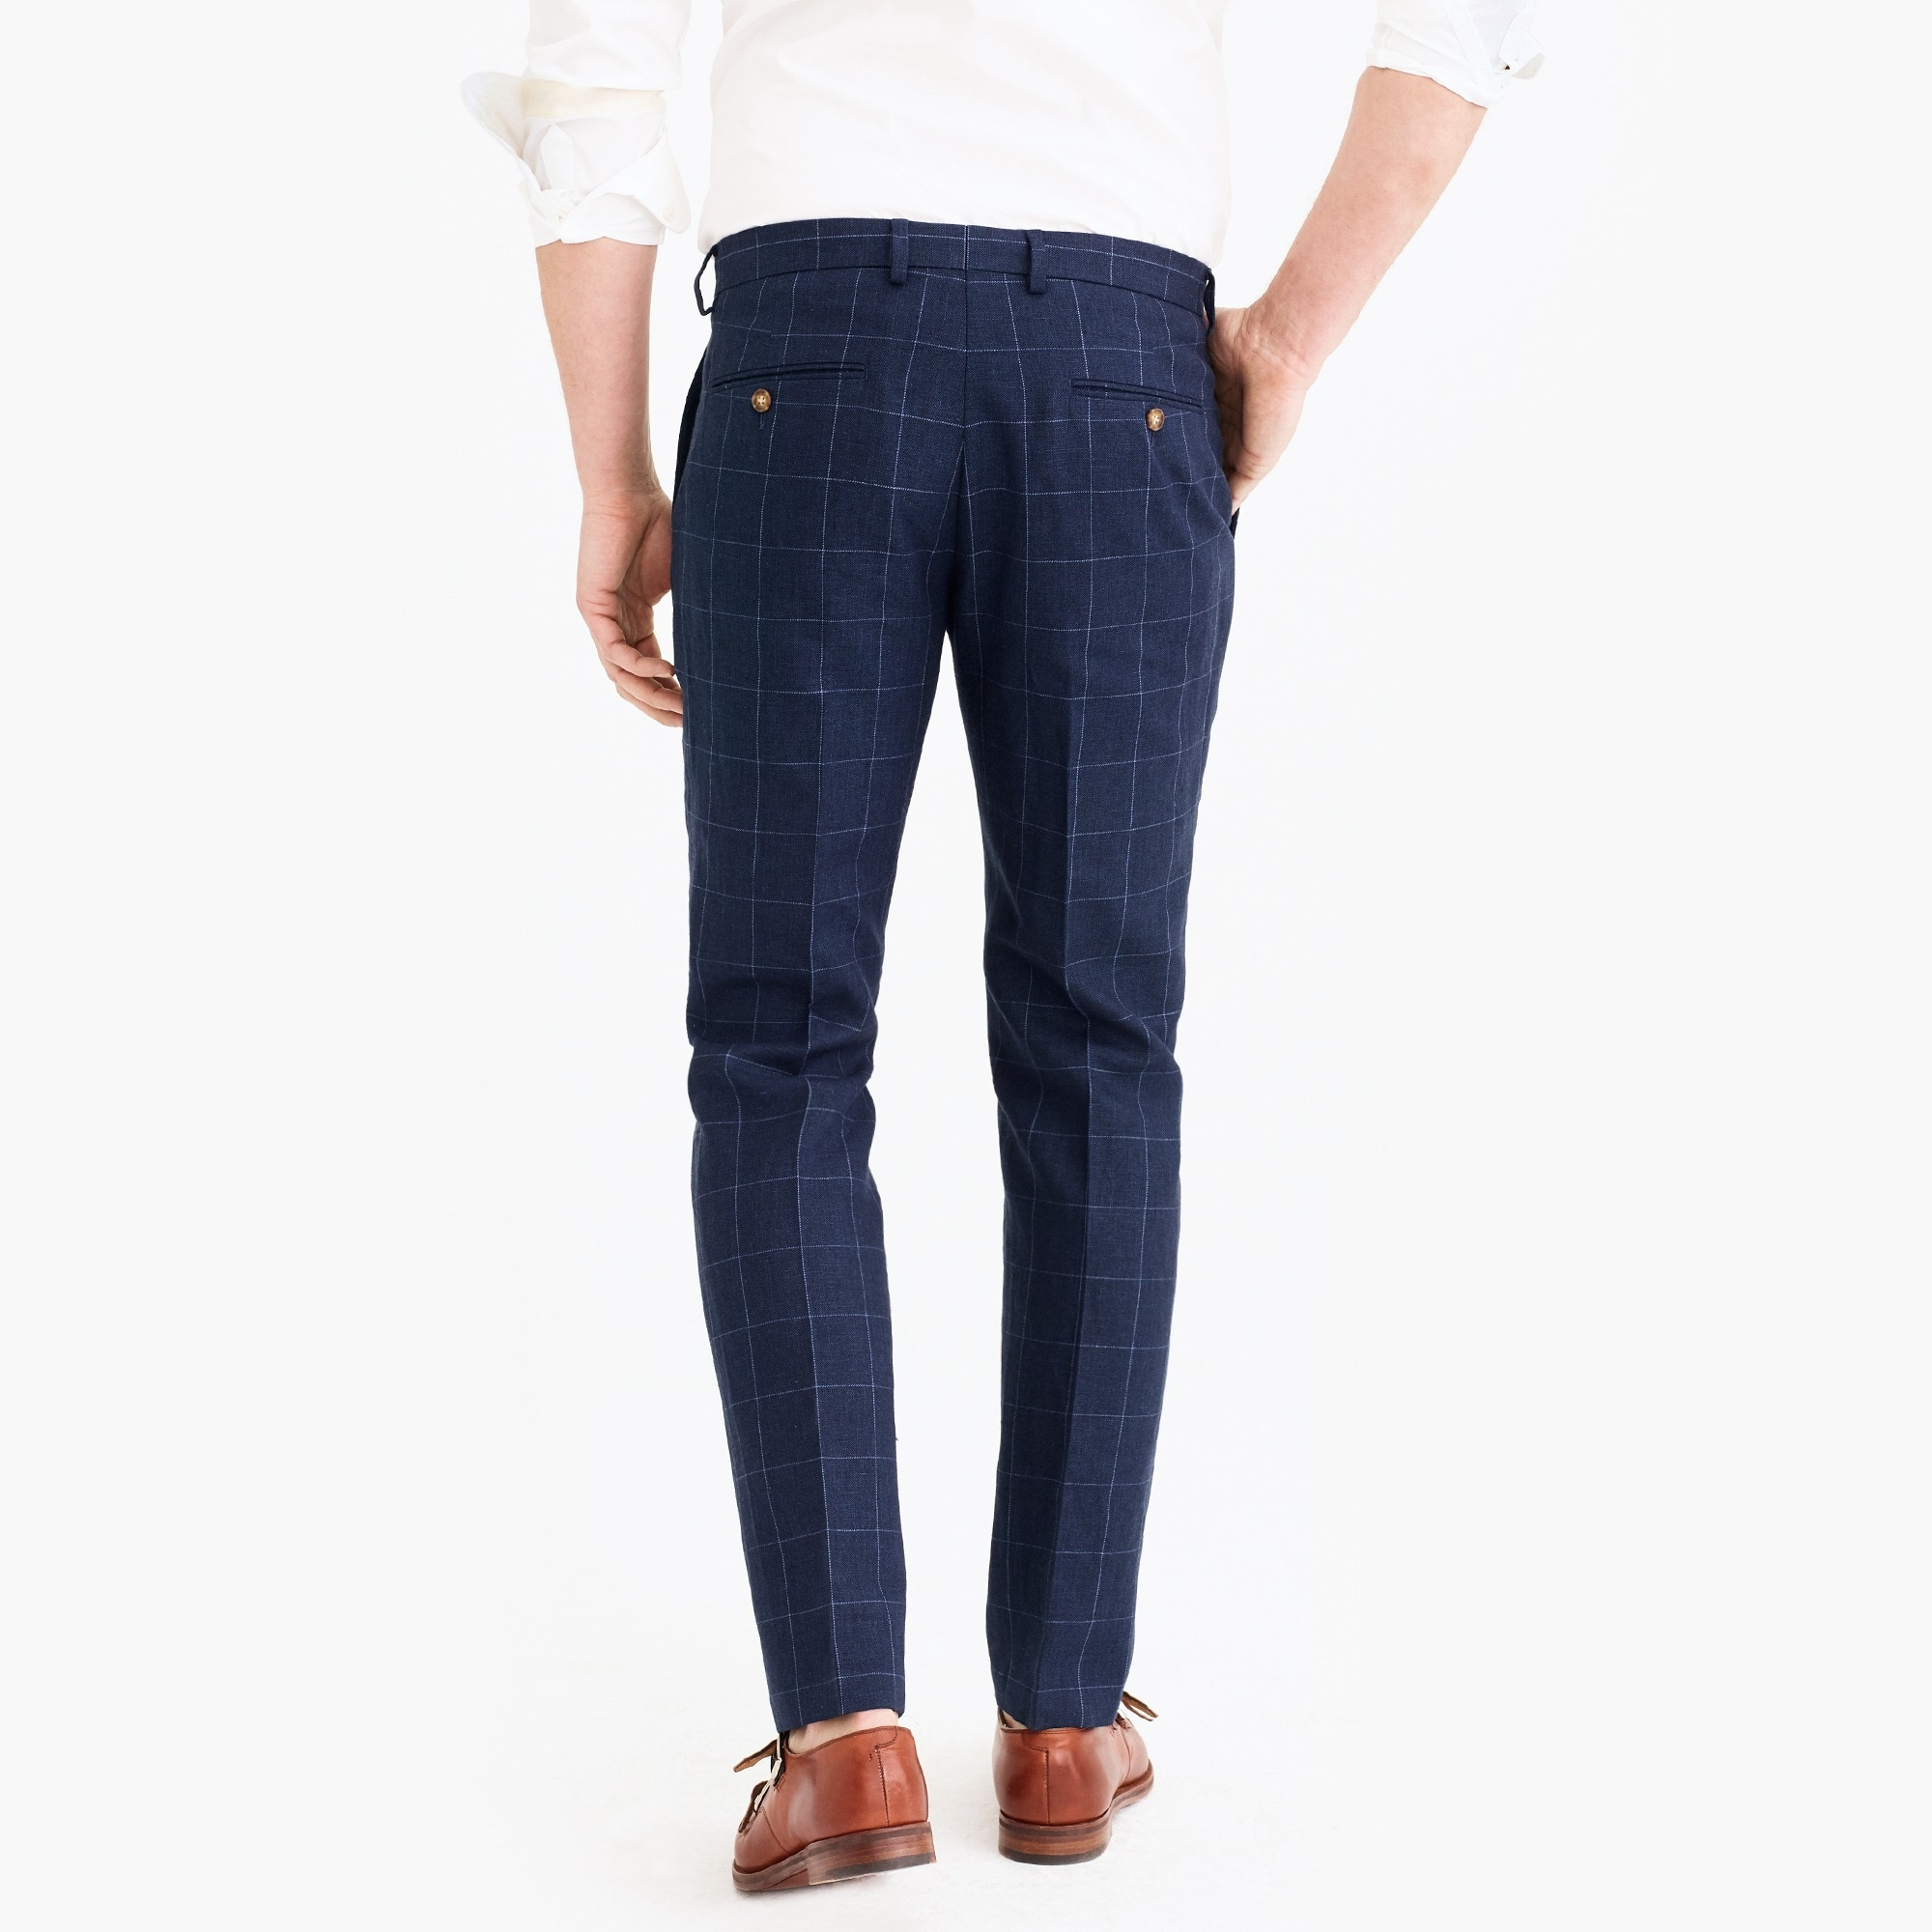 Slim-fit Thompson suit pant in linen-cotton windowpane